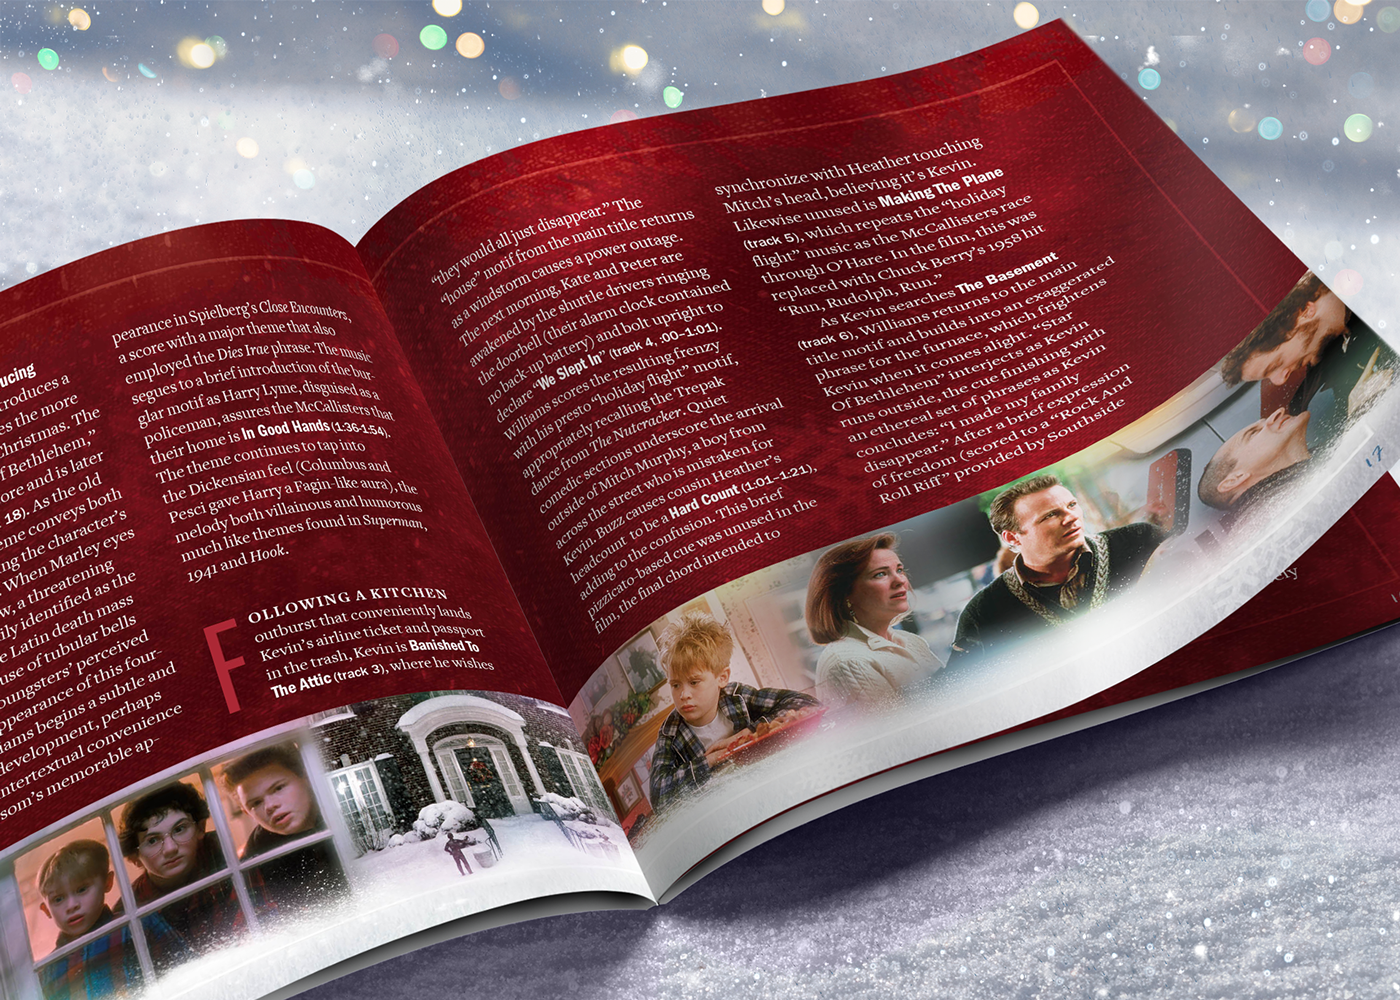 Home Alone: 25th Anniversary on Behance